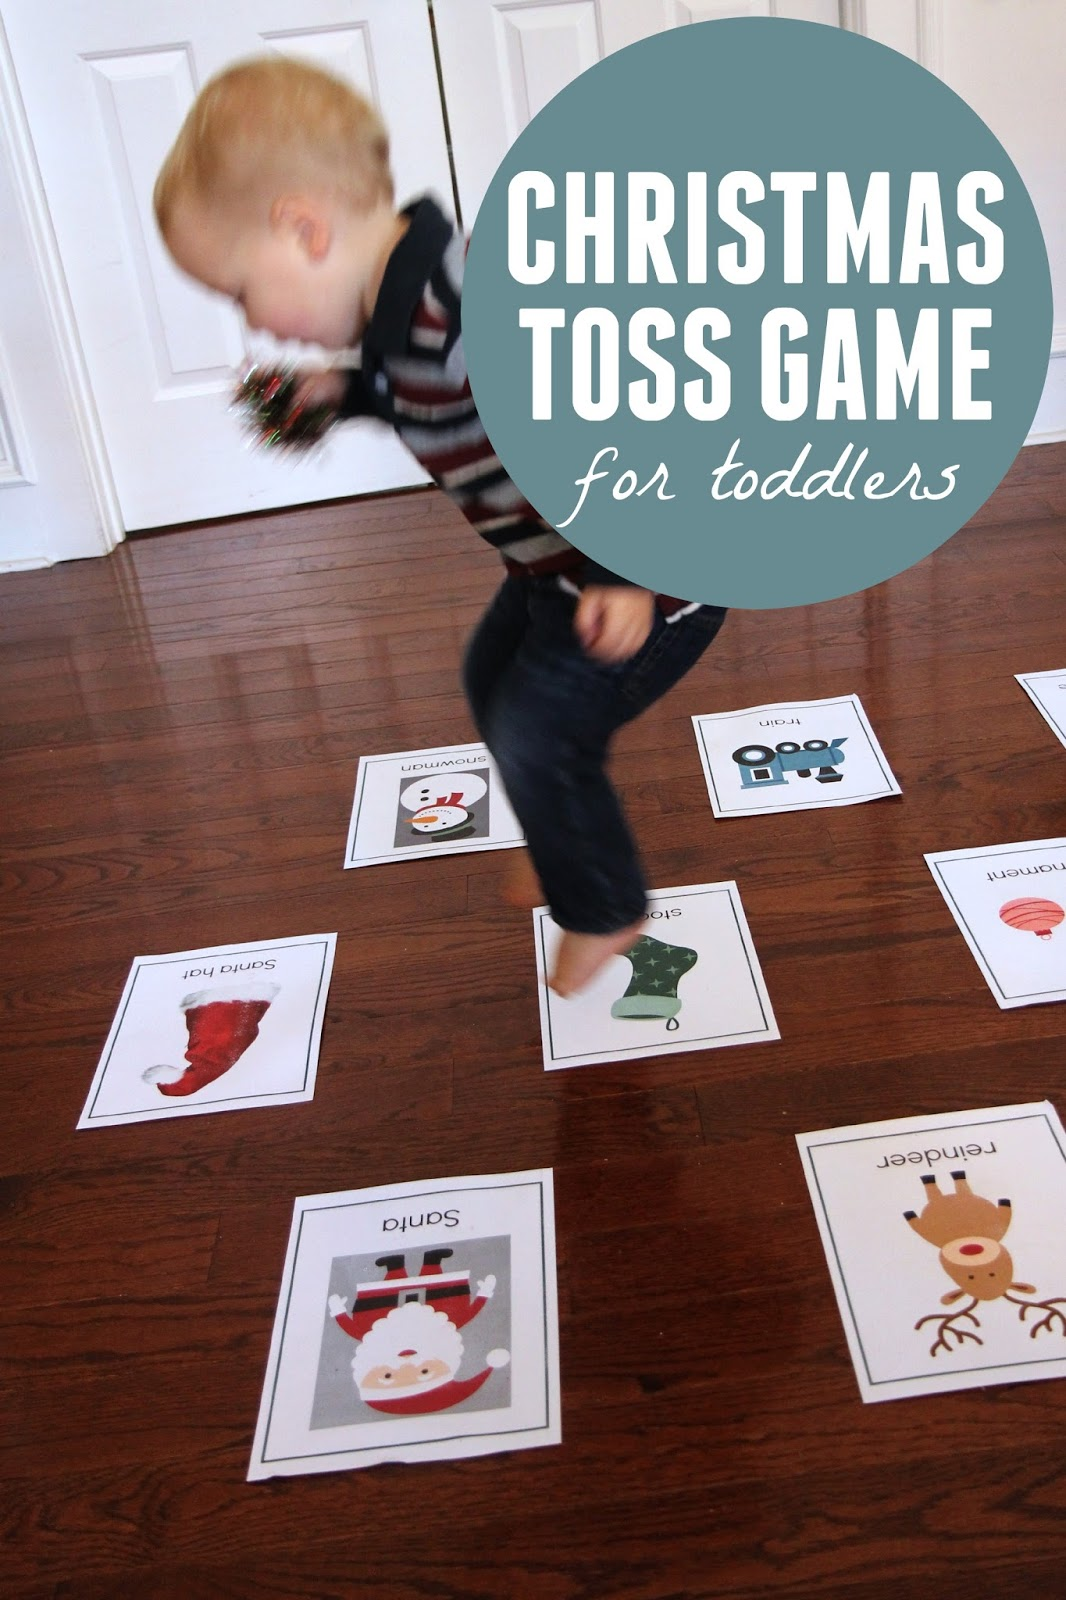 Toddler Approved Christmas Toss Game For Toddlers